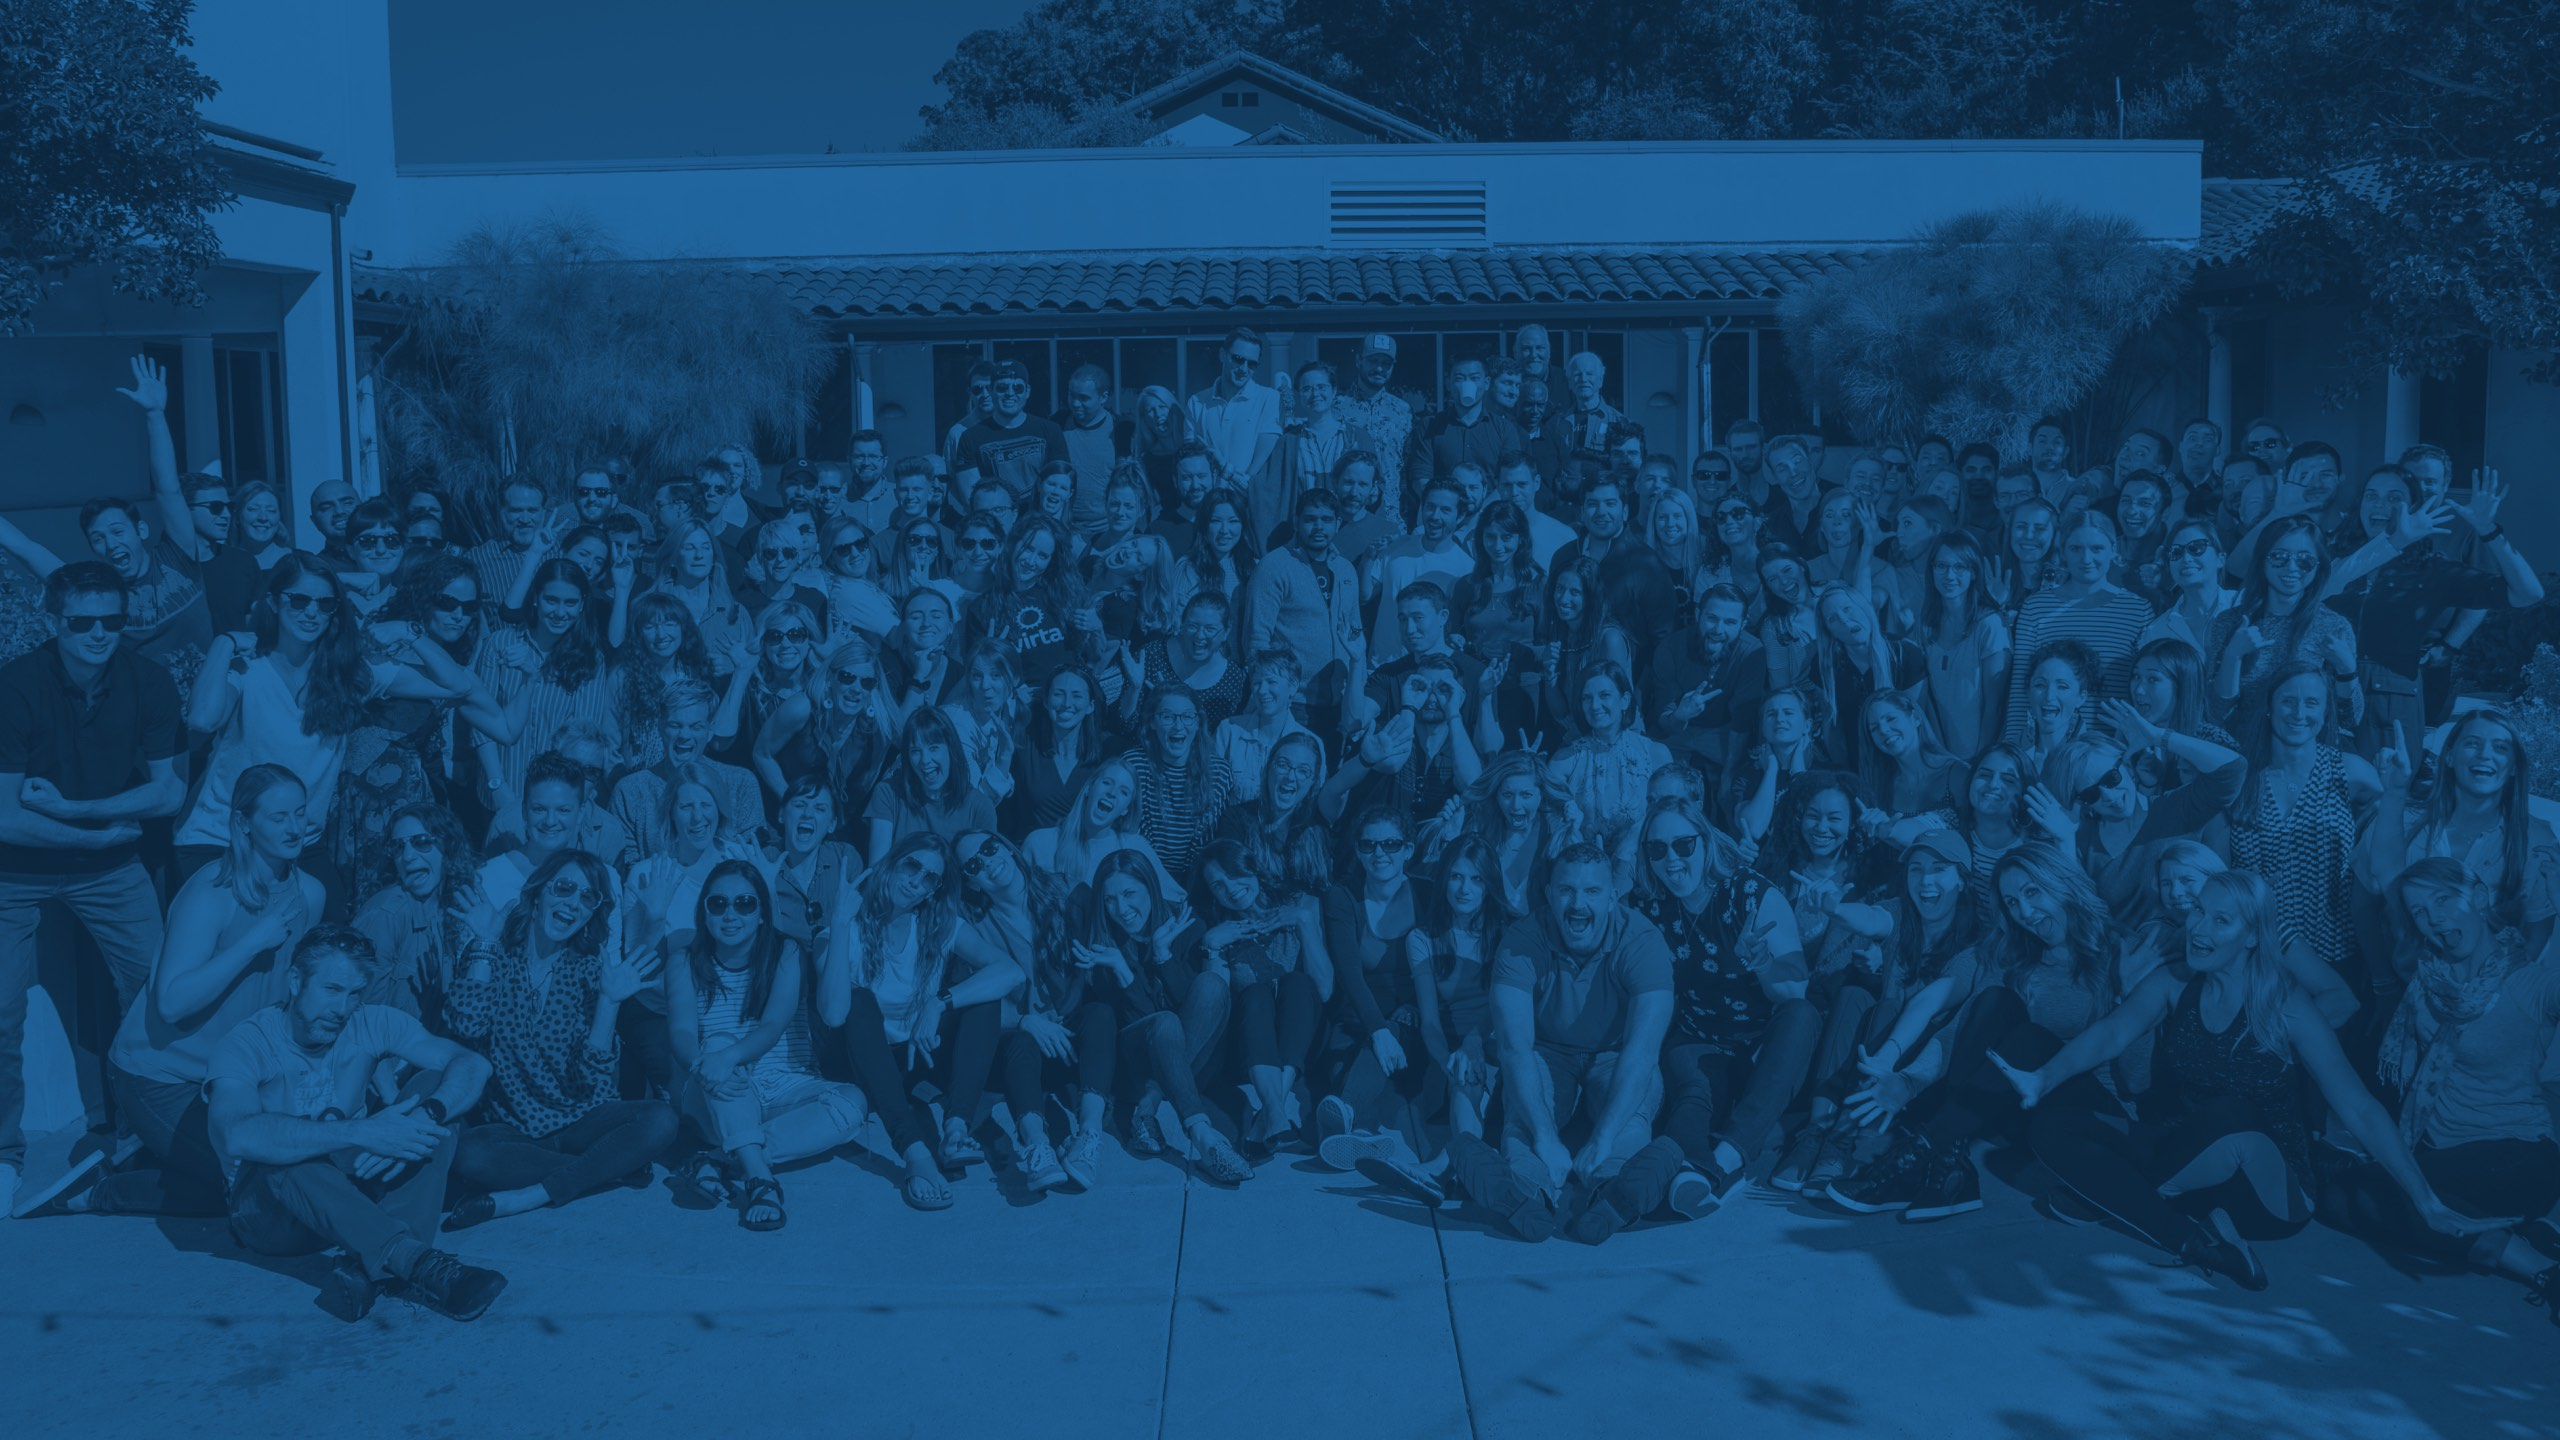 The Virta team standing outdoors, from October 2018 (with a blue overlay)